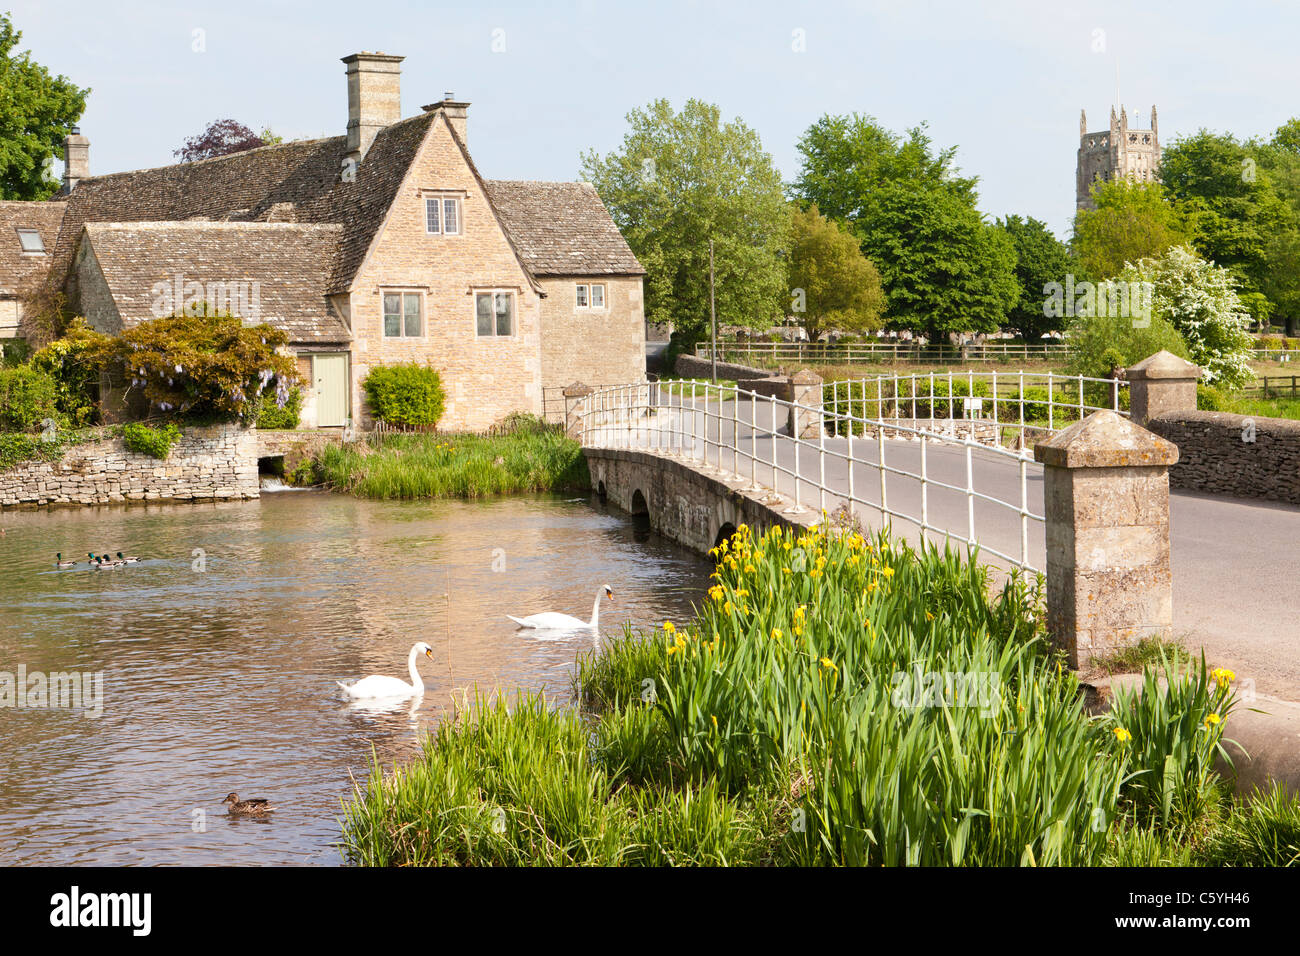 An old mill beside the River Coln in the Cotswold town of Fairford, Gloucestershire - Stock Image